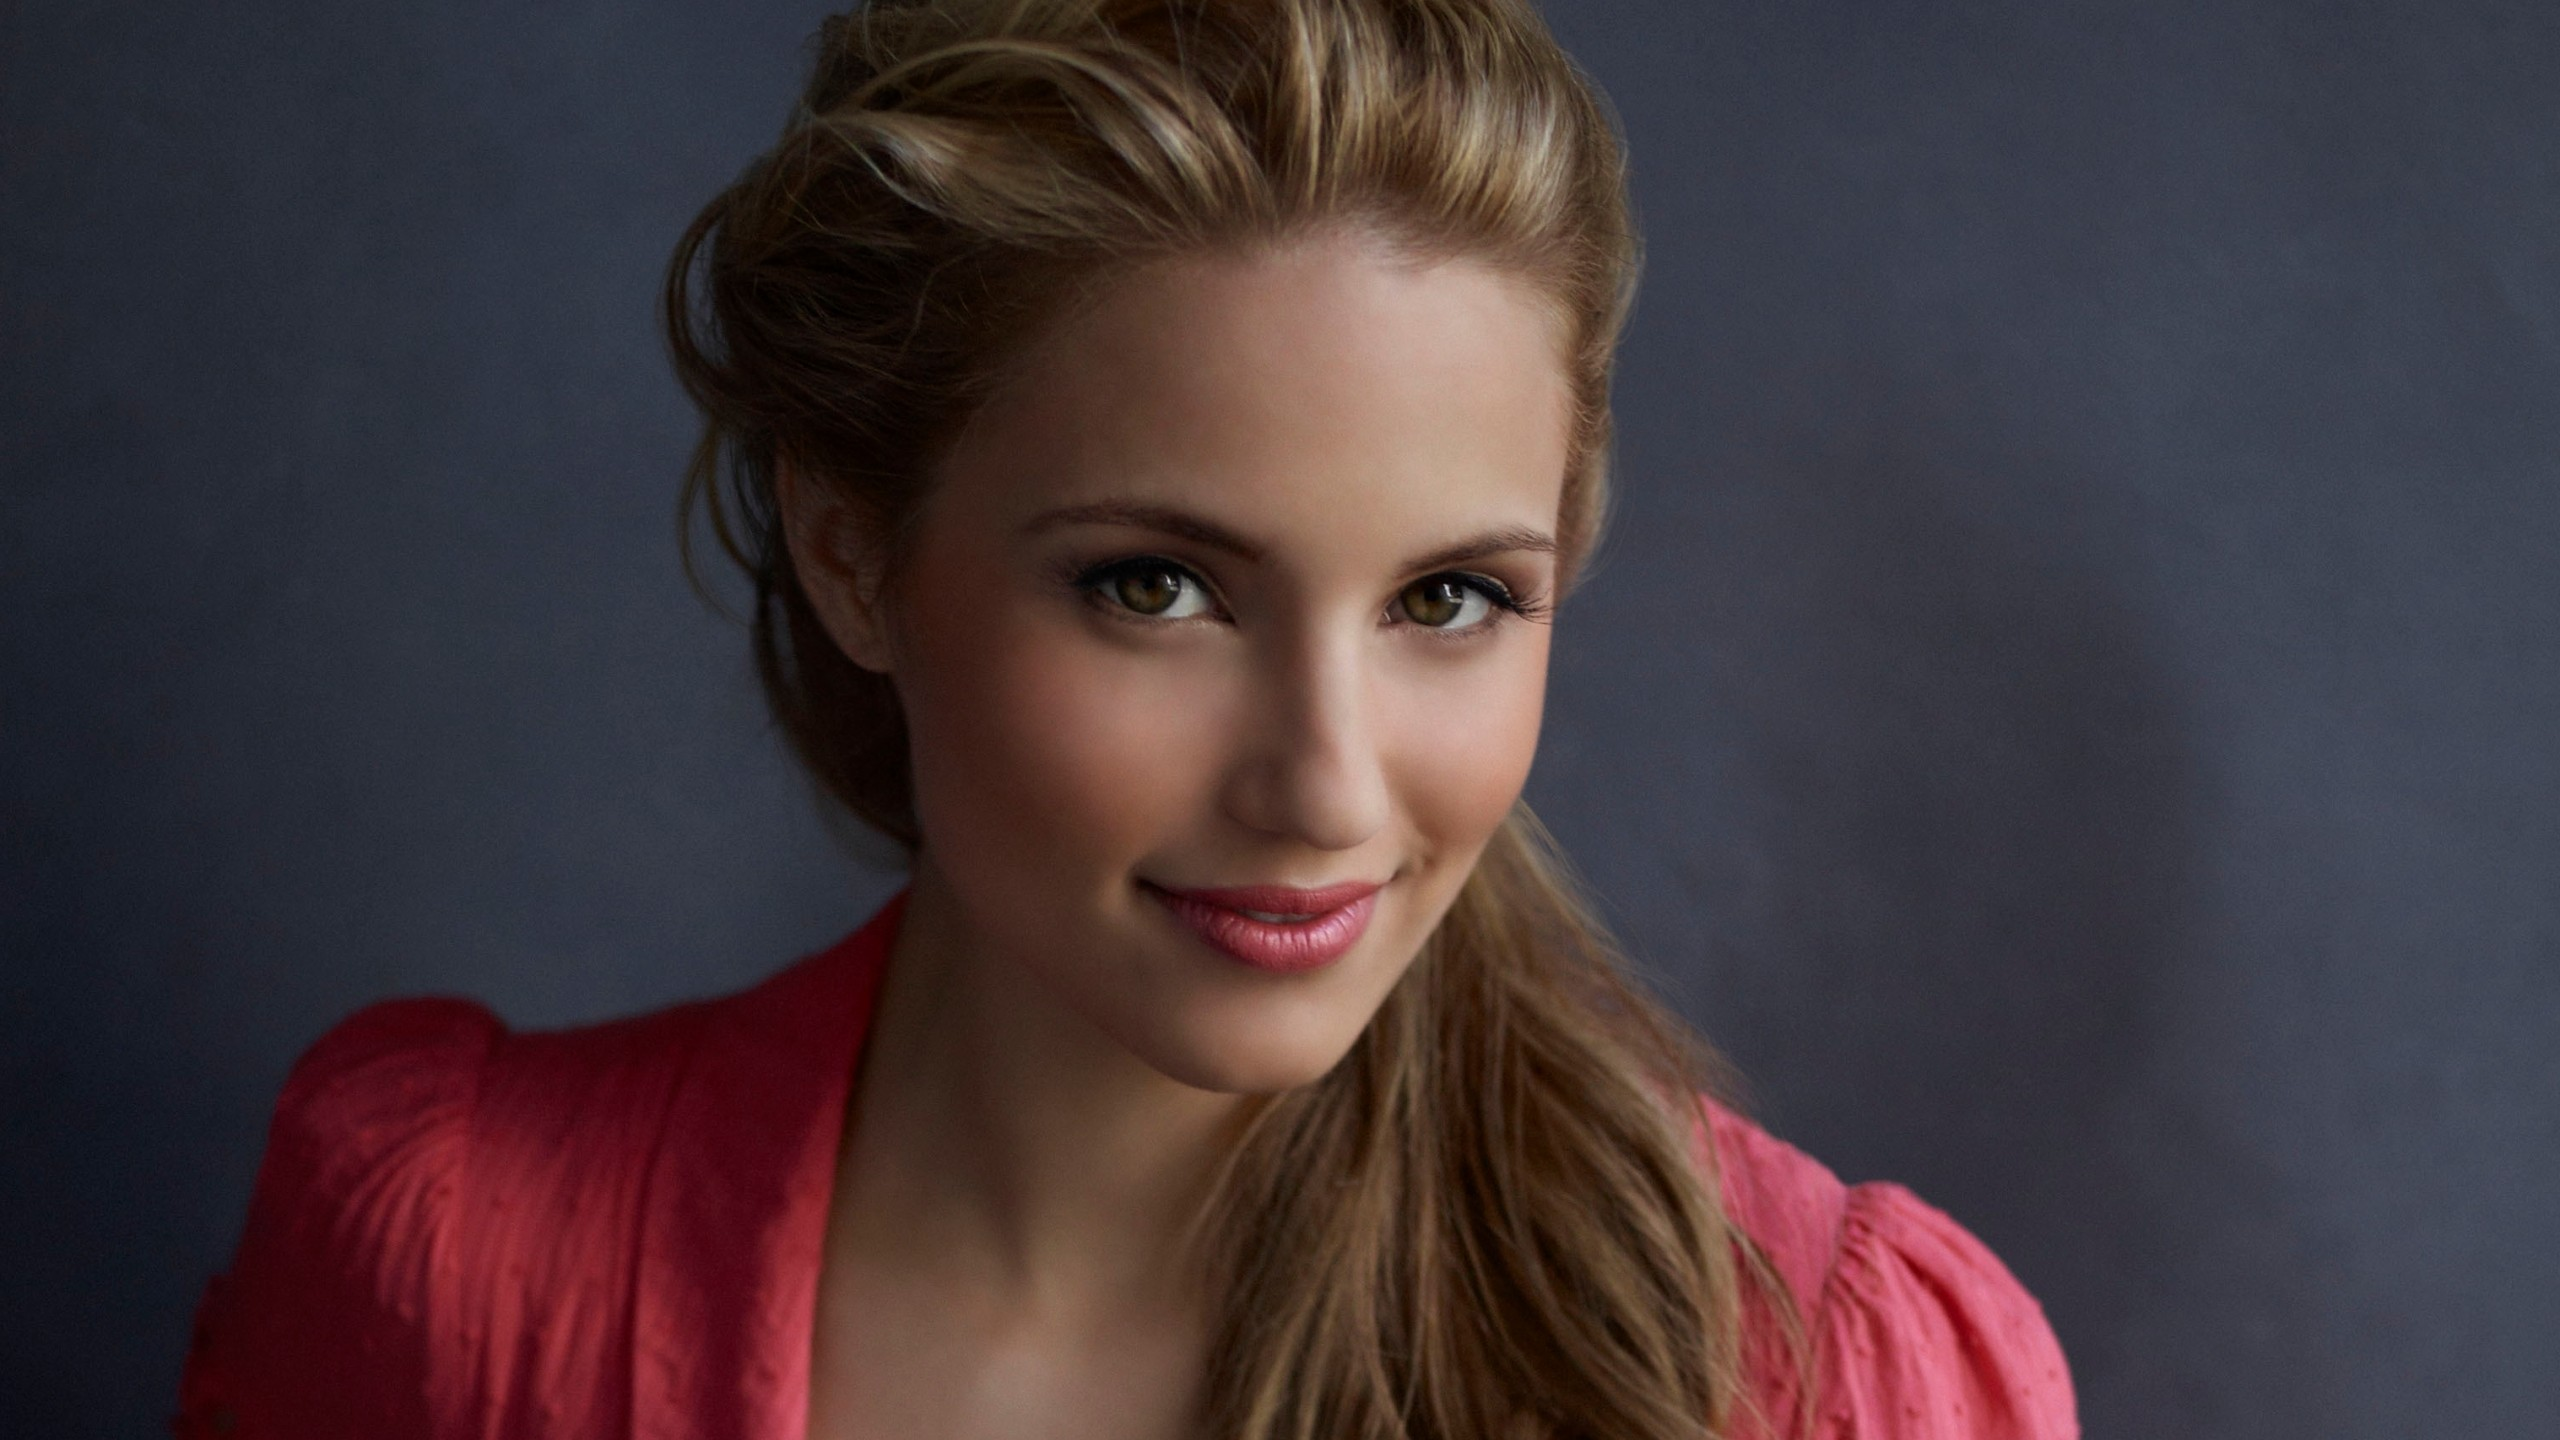 Film Actress Hd Wallpapers Pictures Of Dianna Agron Pictures Of Celebrities